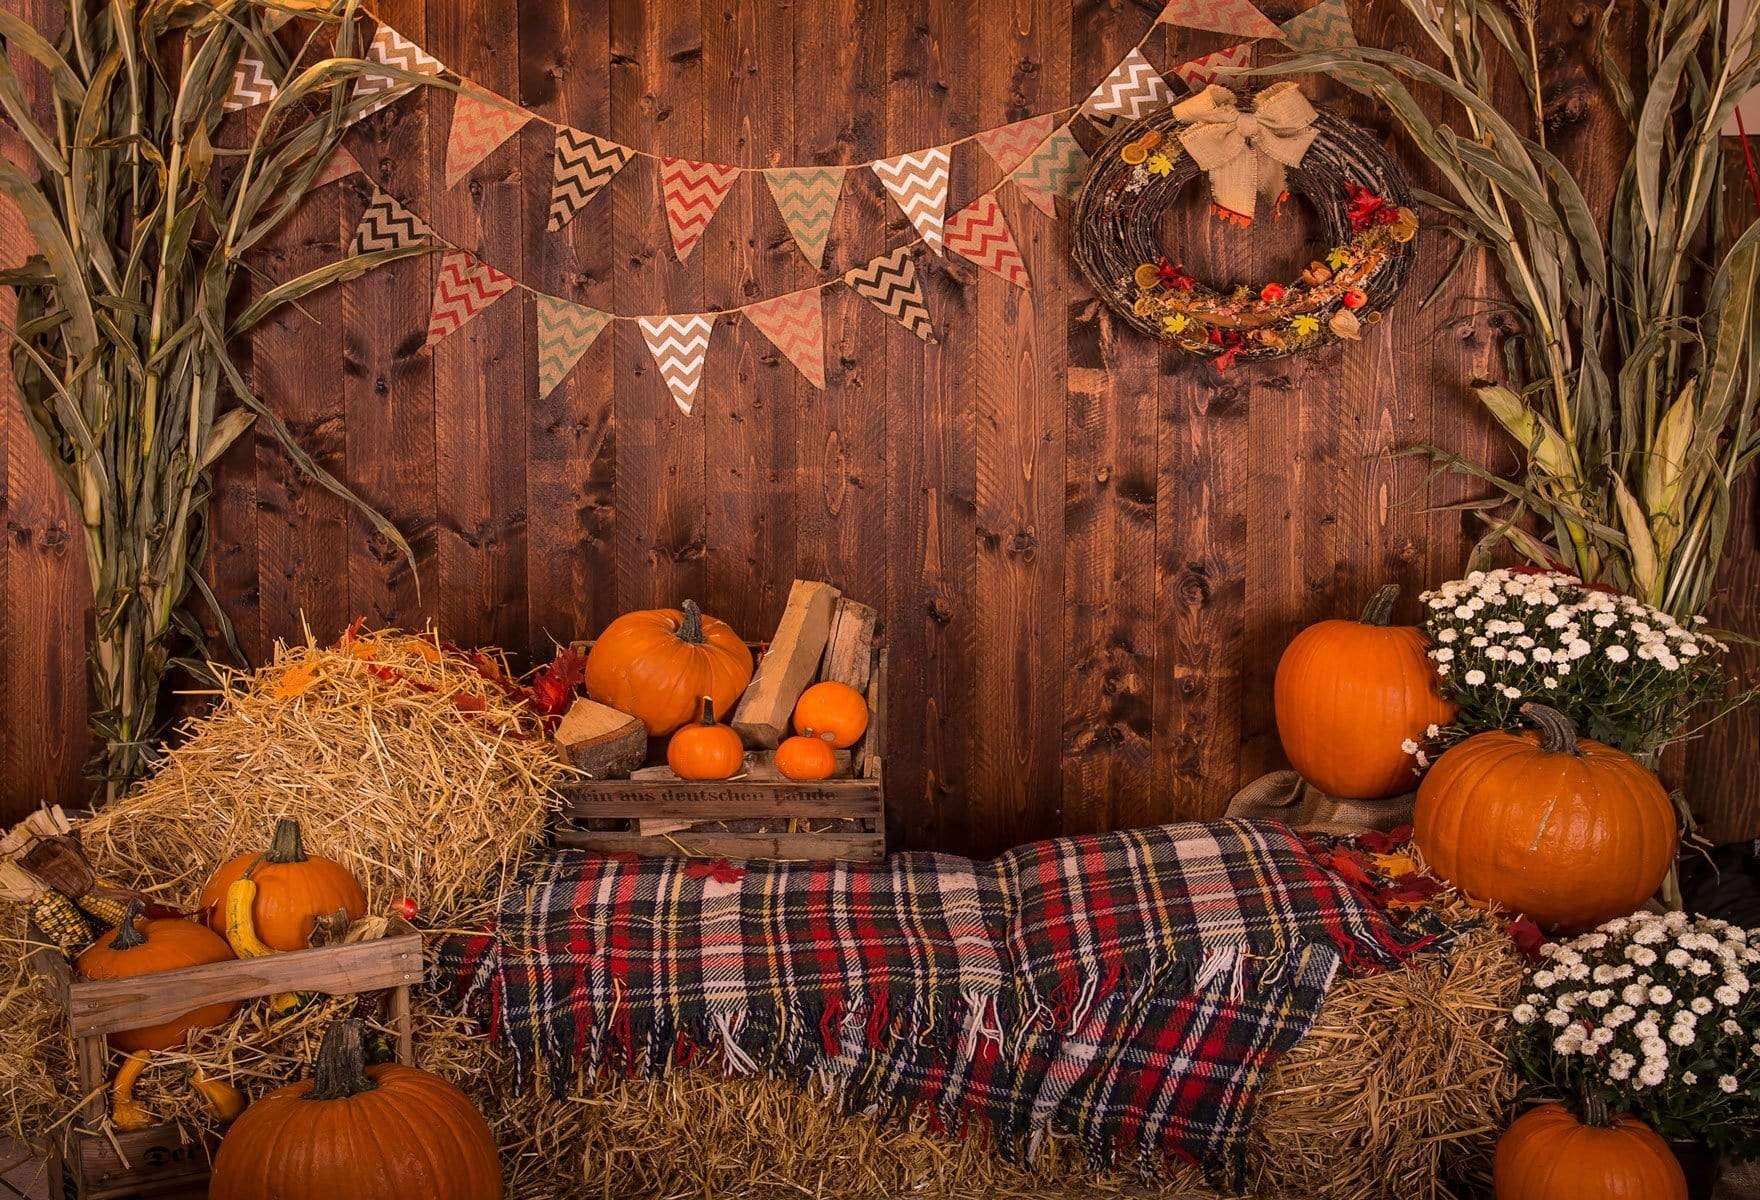 Load image into Gallery viewer, Katebackdrop£ºKate Fall Pumpkin Straw Wood Daisy for Pictures